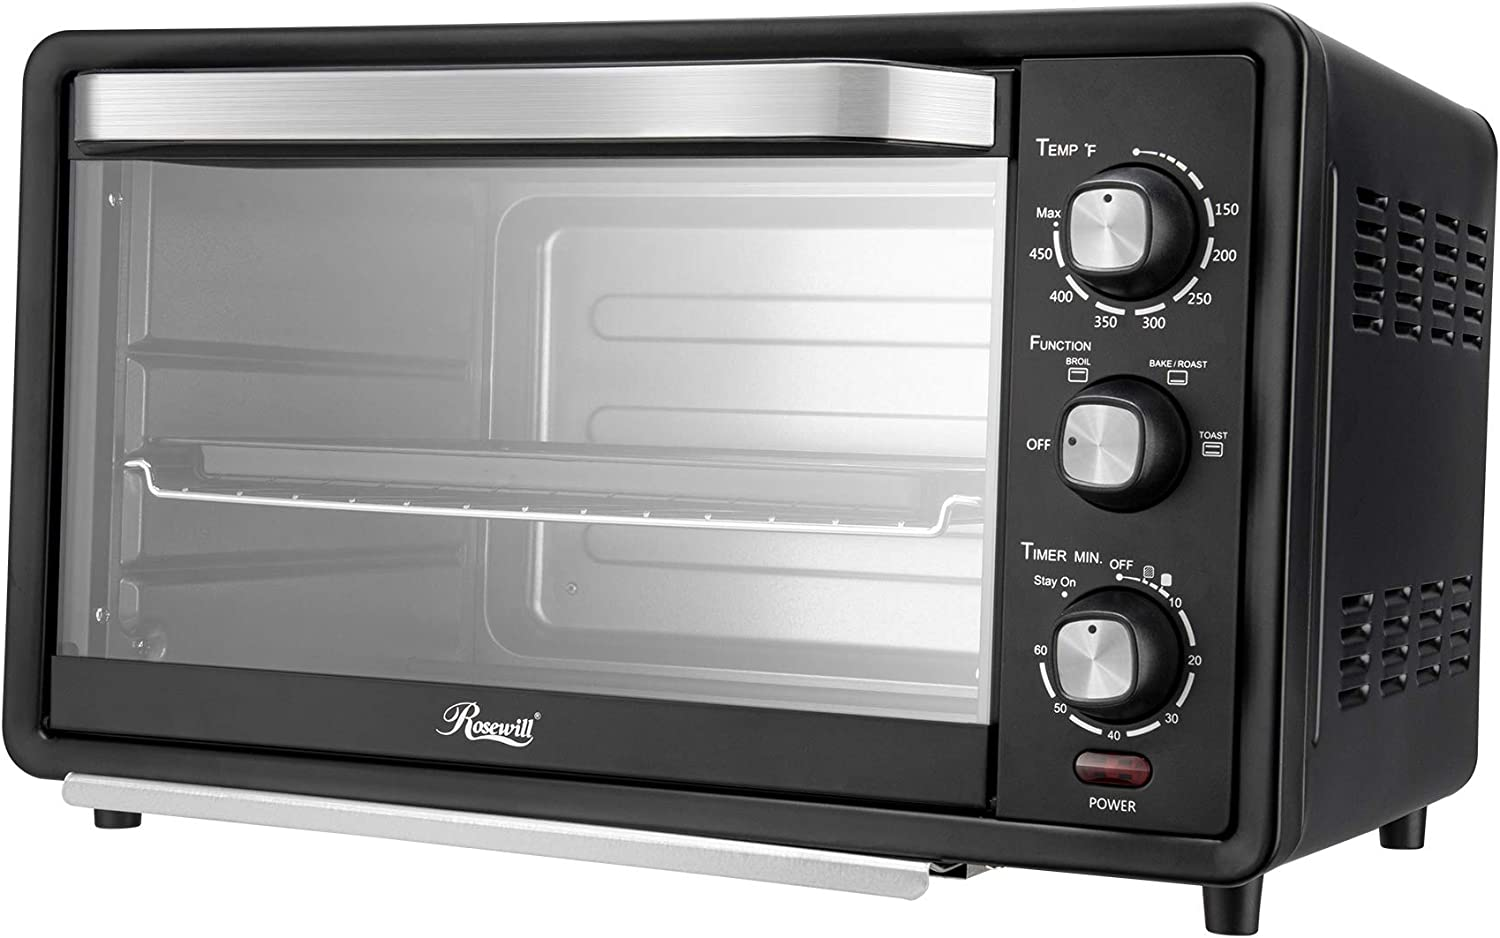 Stainless Steel Countertop Toaster Oven Rosewill RHTO-19001 6-Slice Convection Toaster Oven with Timer /& Temperature Settings Broil Rack 19-Liter Large Capacity Fits 12-Inch Pizza Baking Pan